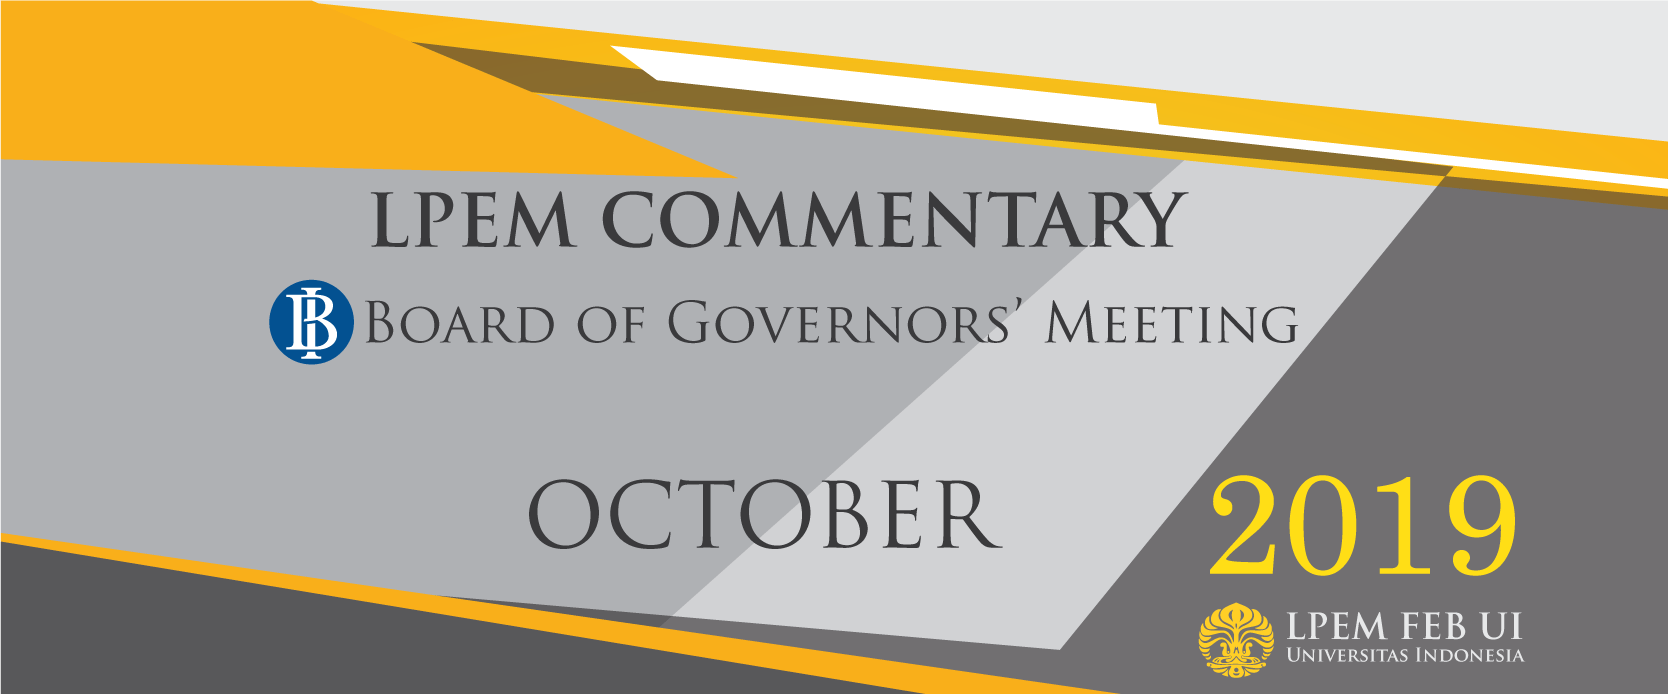 MACROECONOMIC ANALYSIS SERIES: BI Board of Governor Meeting, October 2019